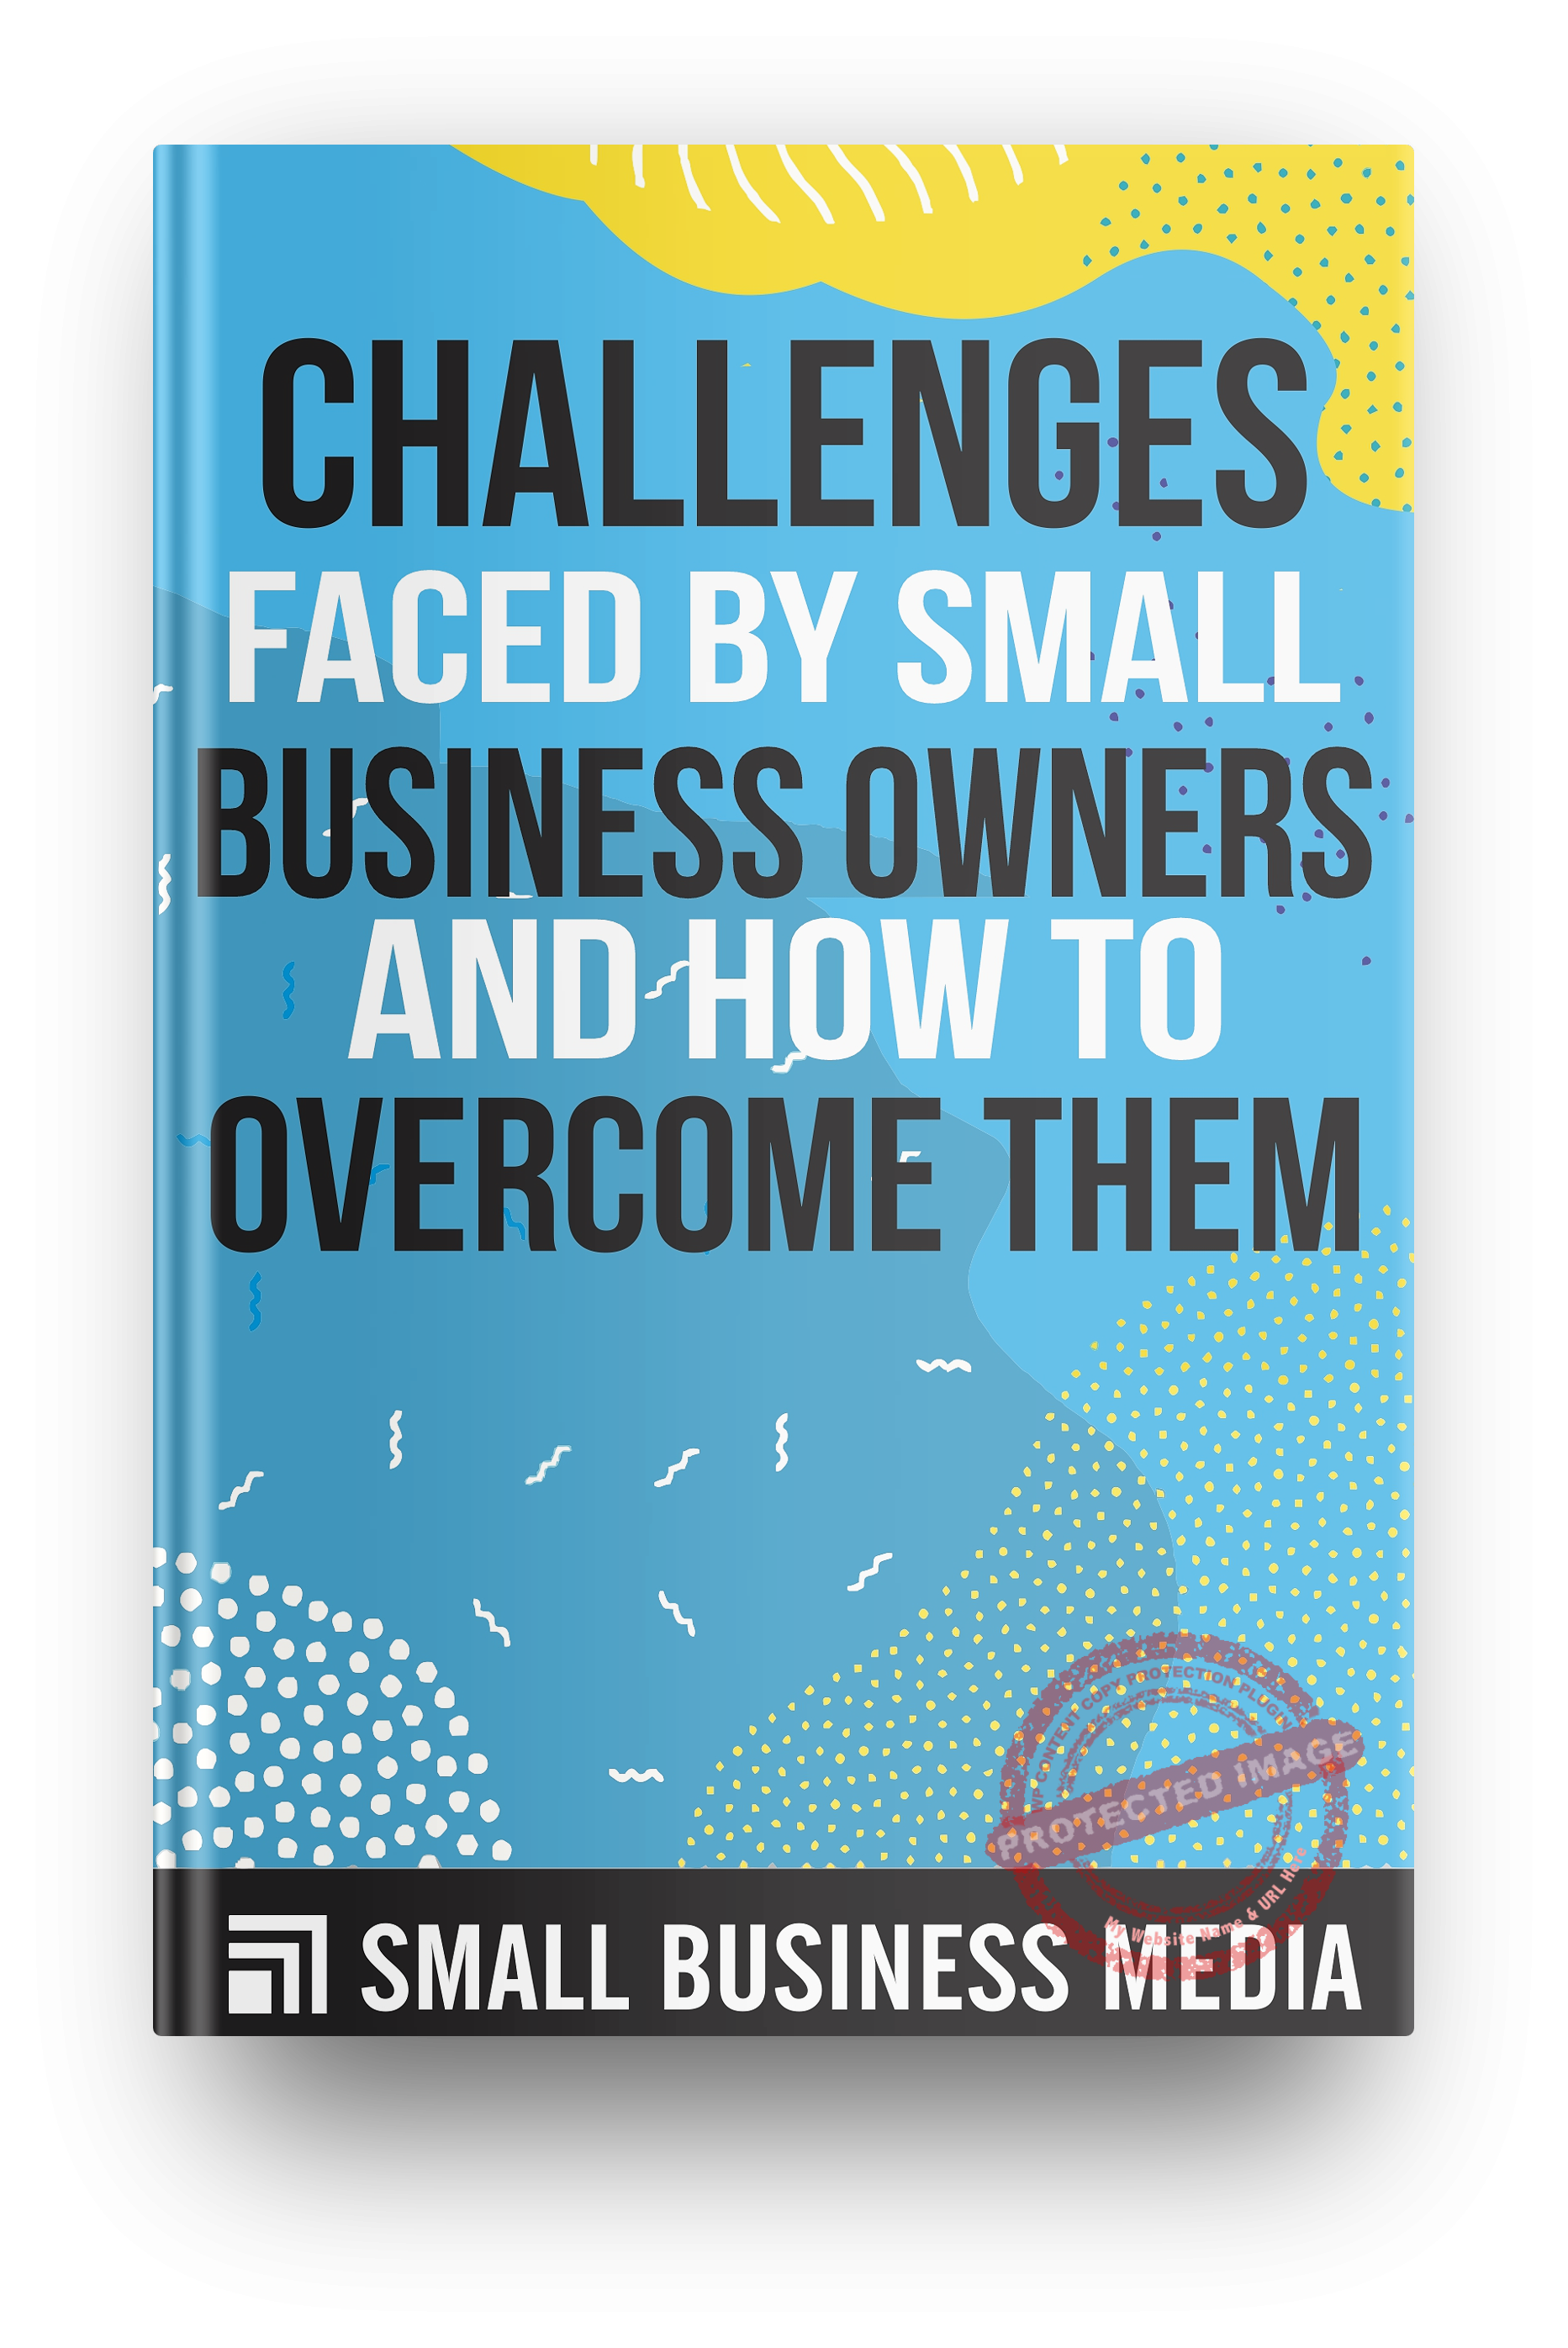 Challenges Faced by Small Business Owners and How to Overcome Them